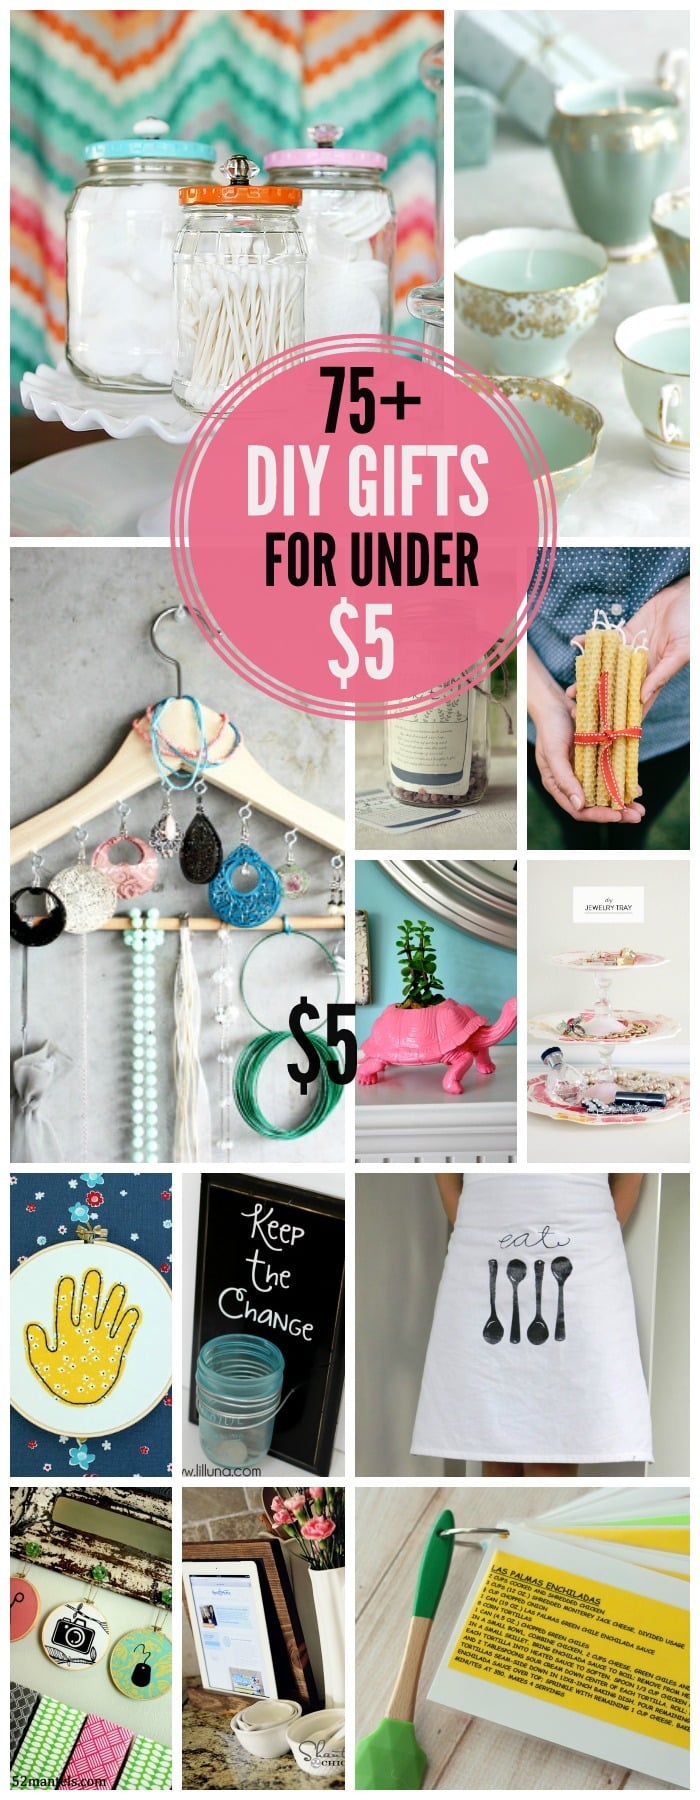 An awesome collection of 75+ DIY Gifts for Under $5. Lots of great ideas!!